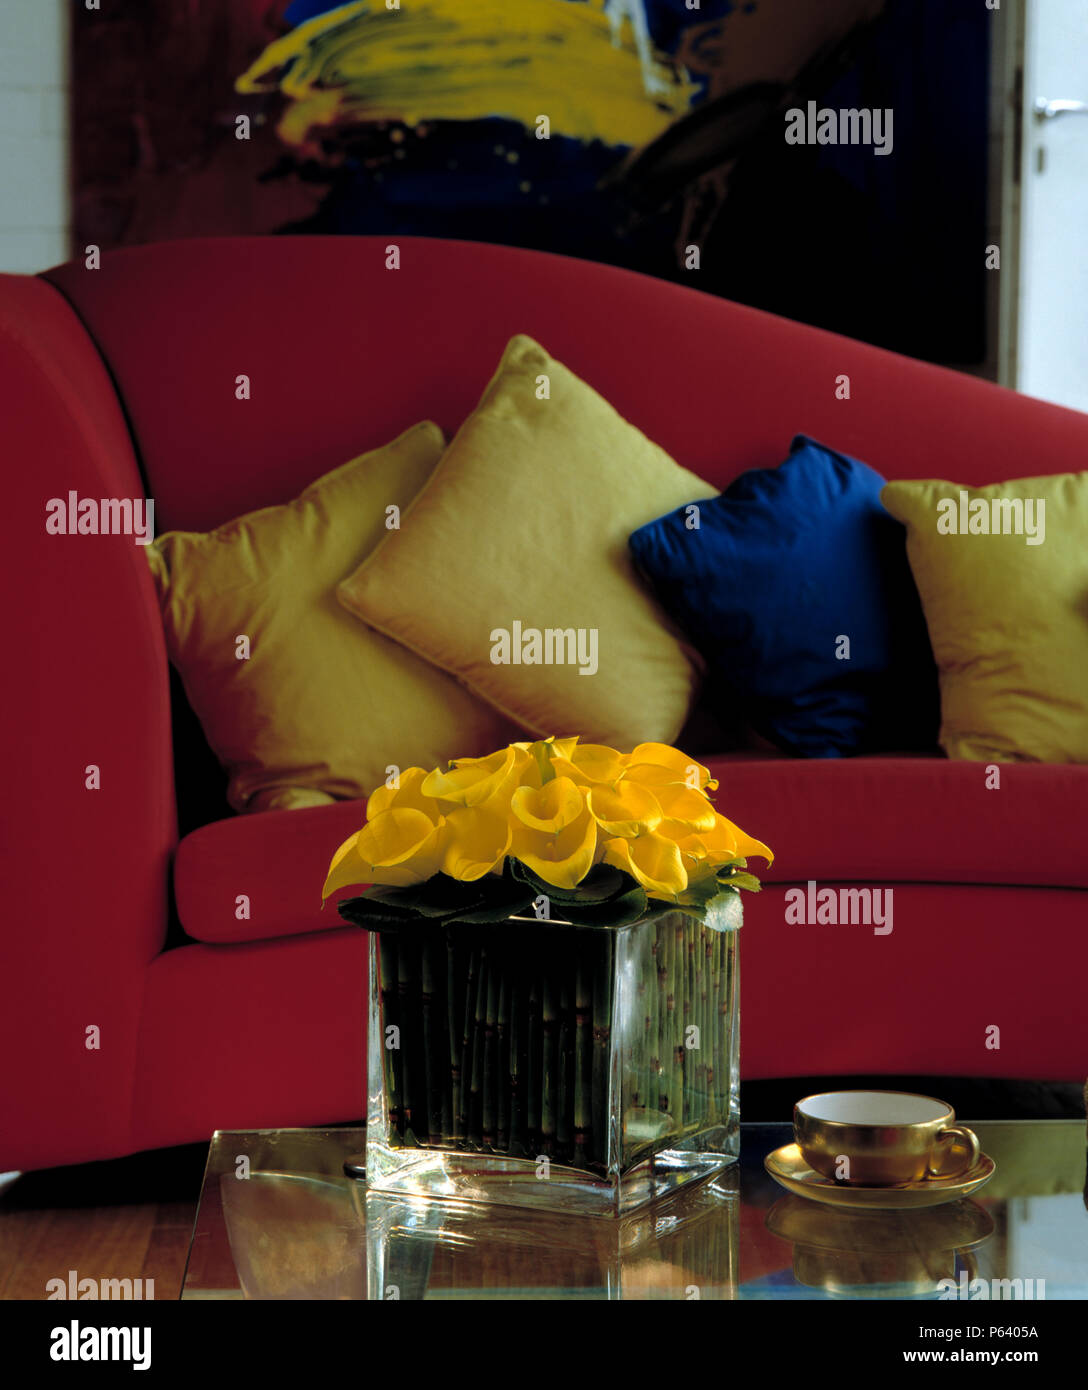 Vase of yellow calla lilies inon table in front of red sofa ...